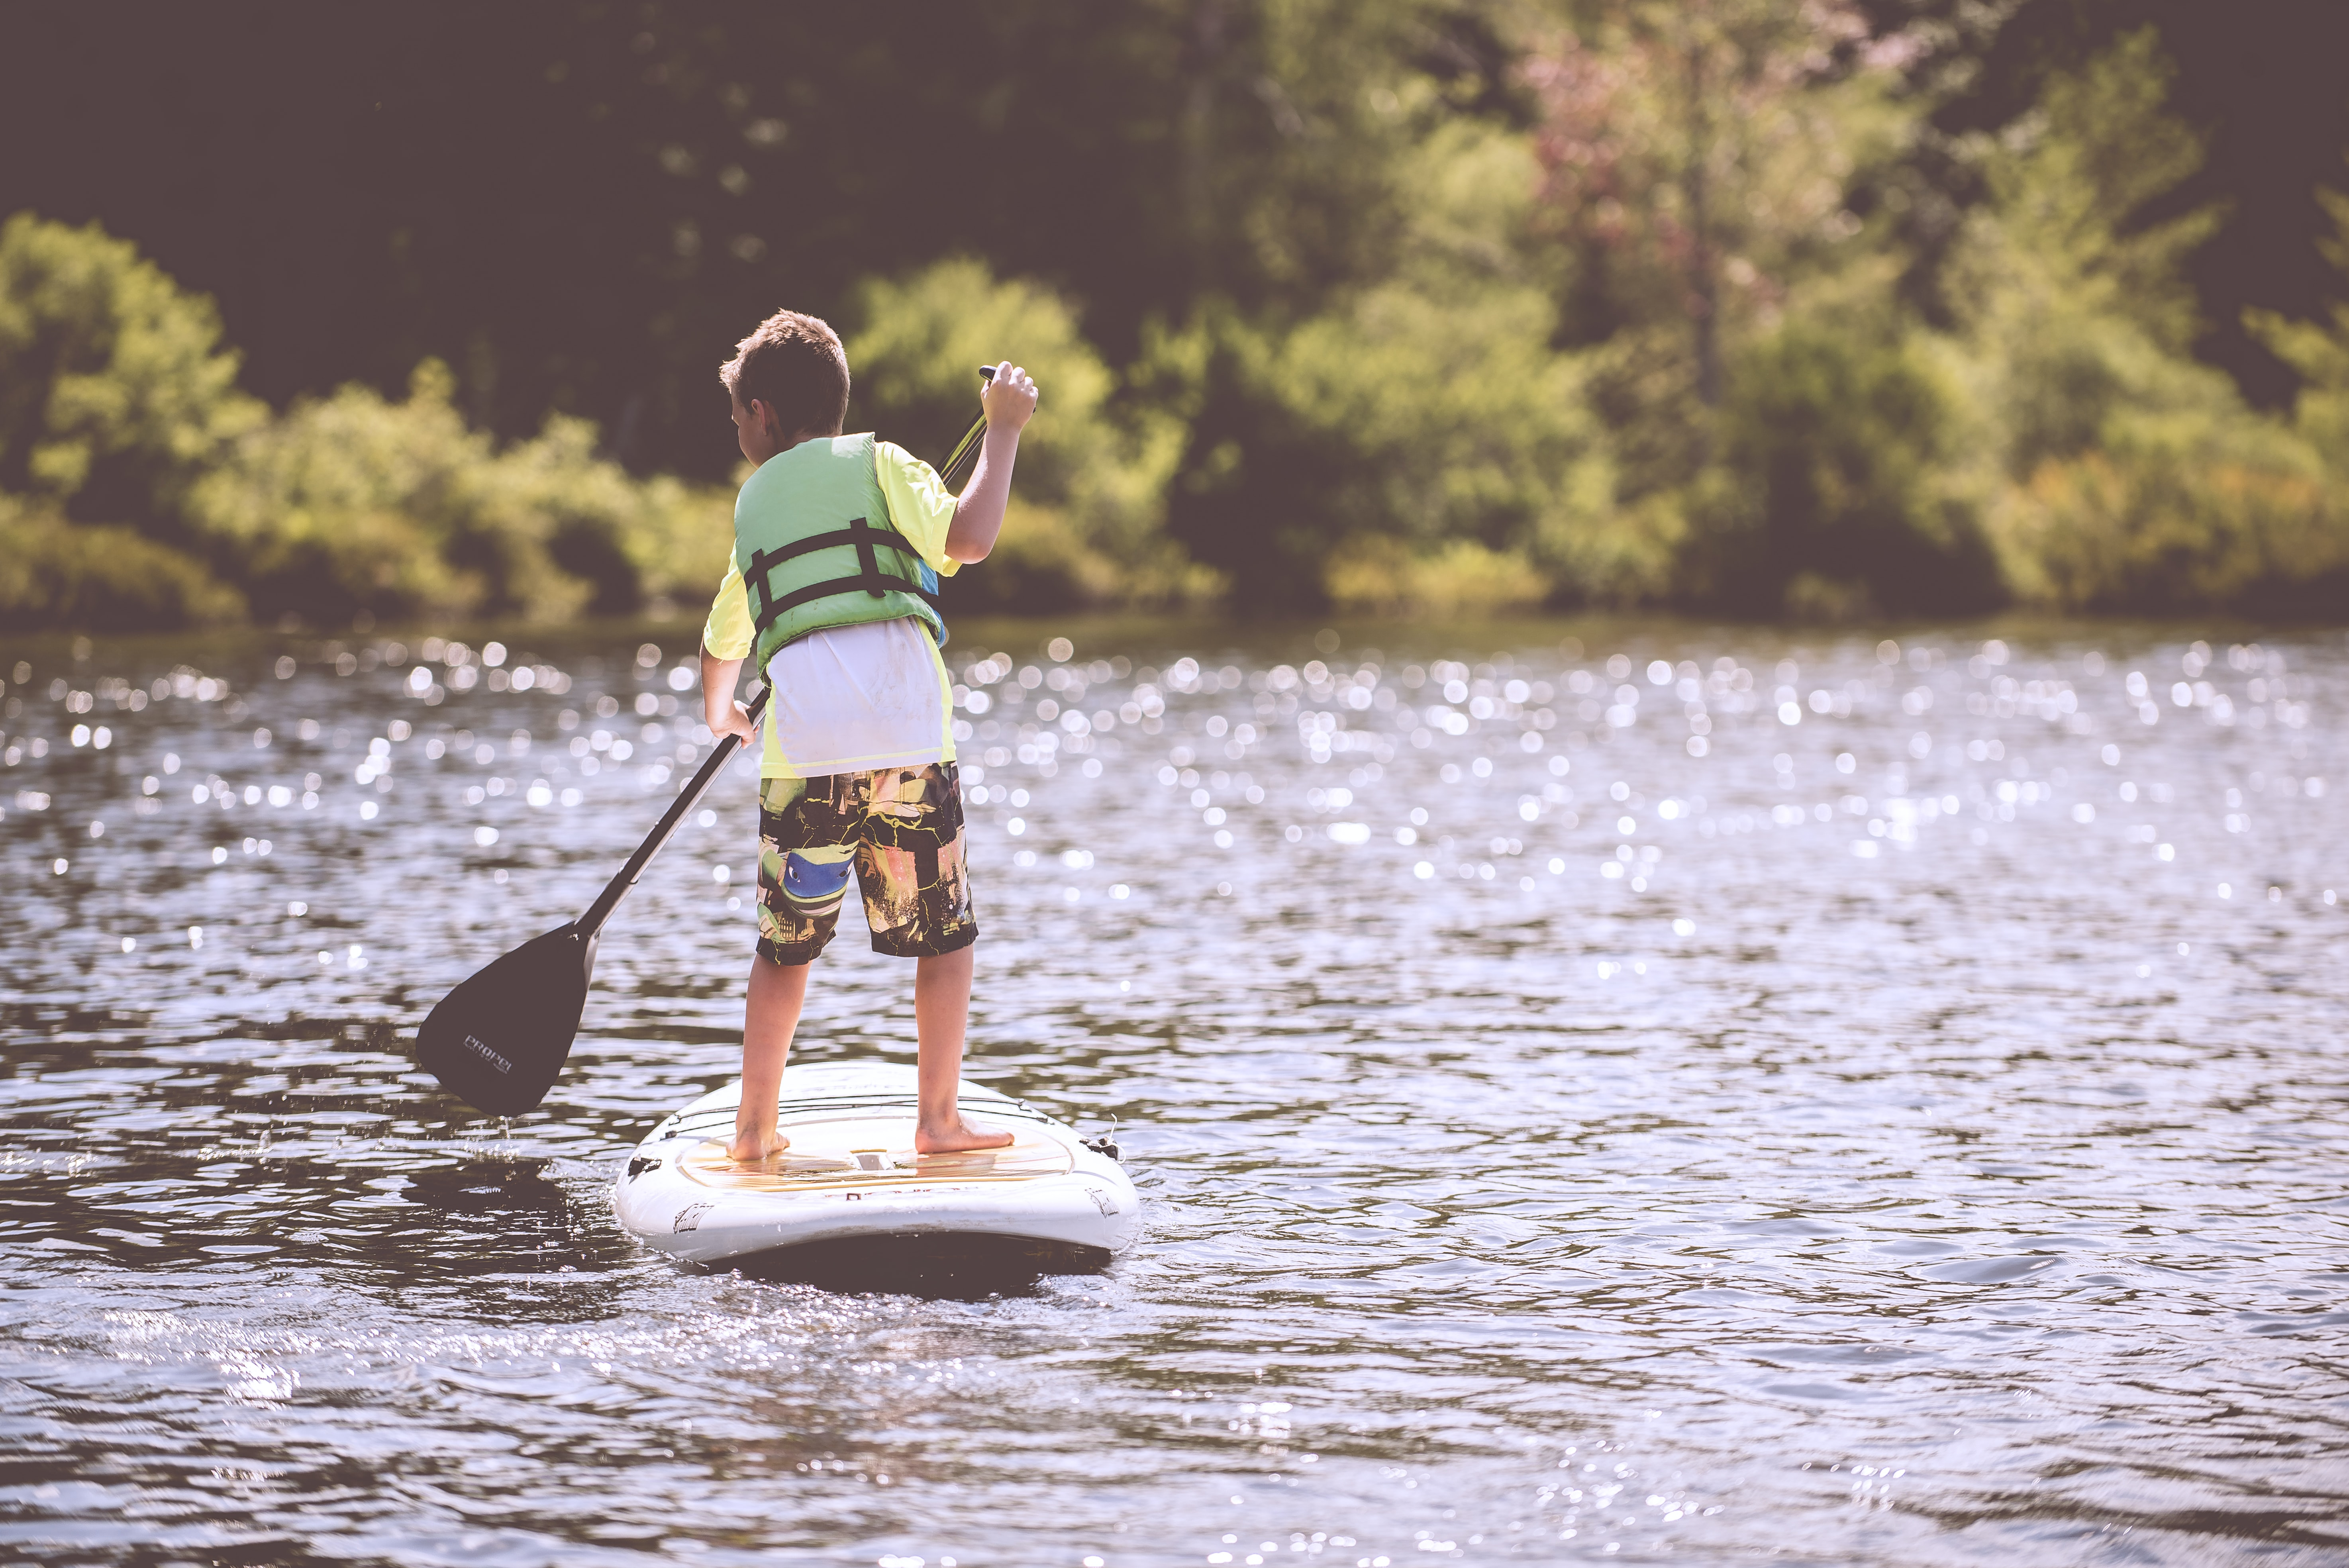 A boy wearing a bathing suit and a green life jacket paddleboarding